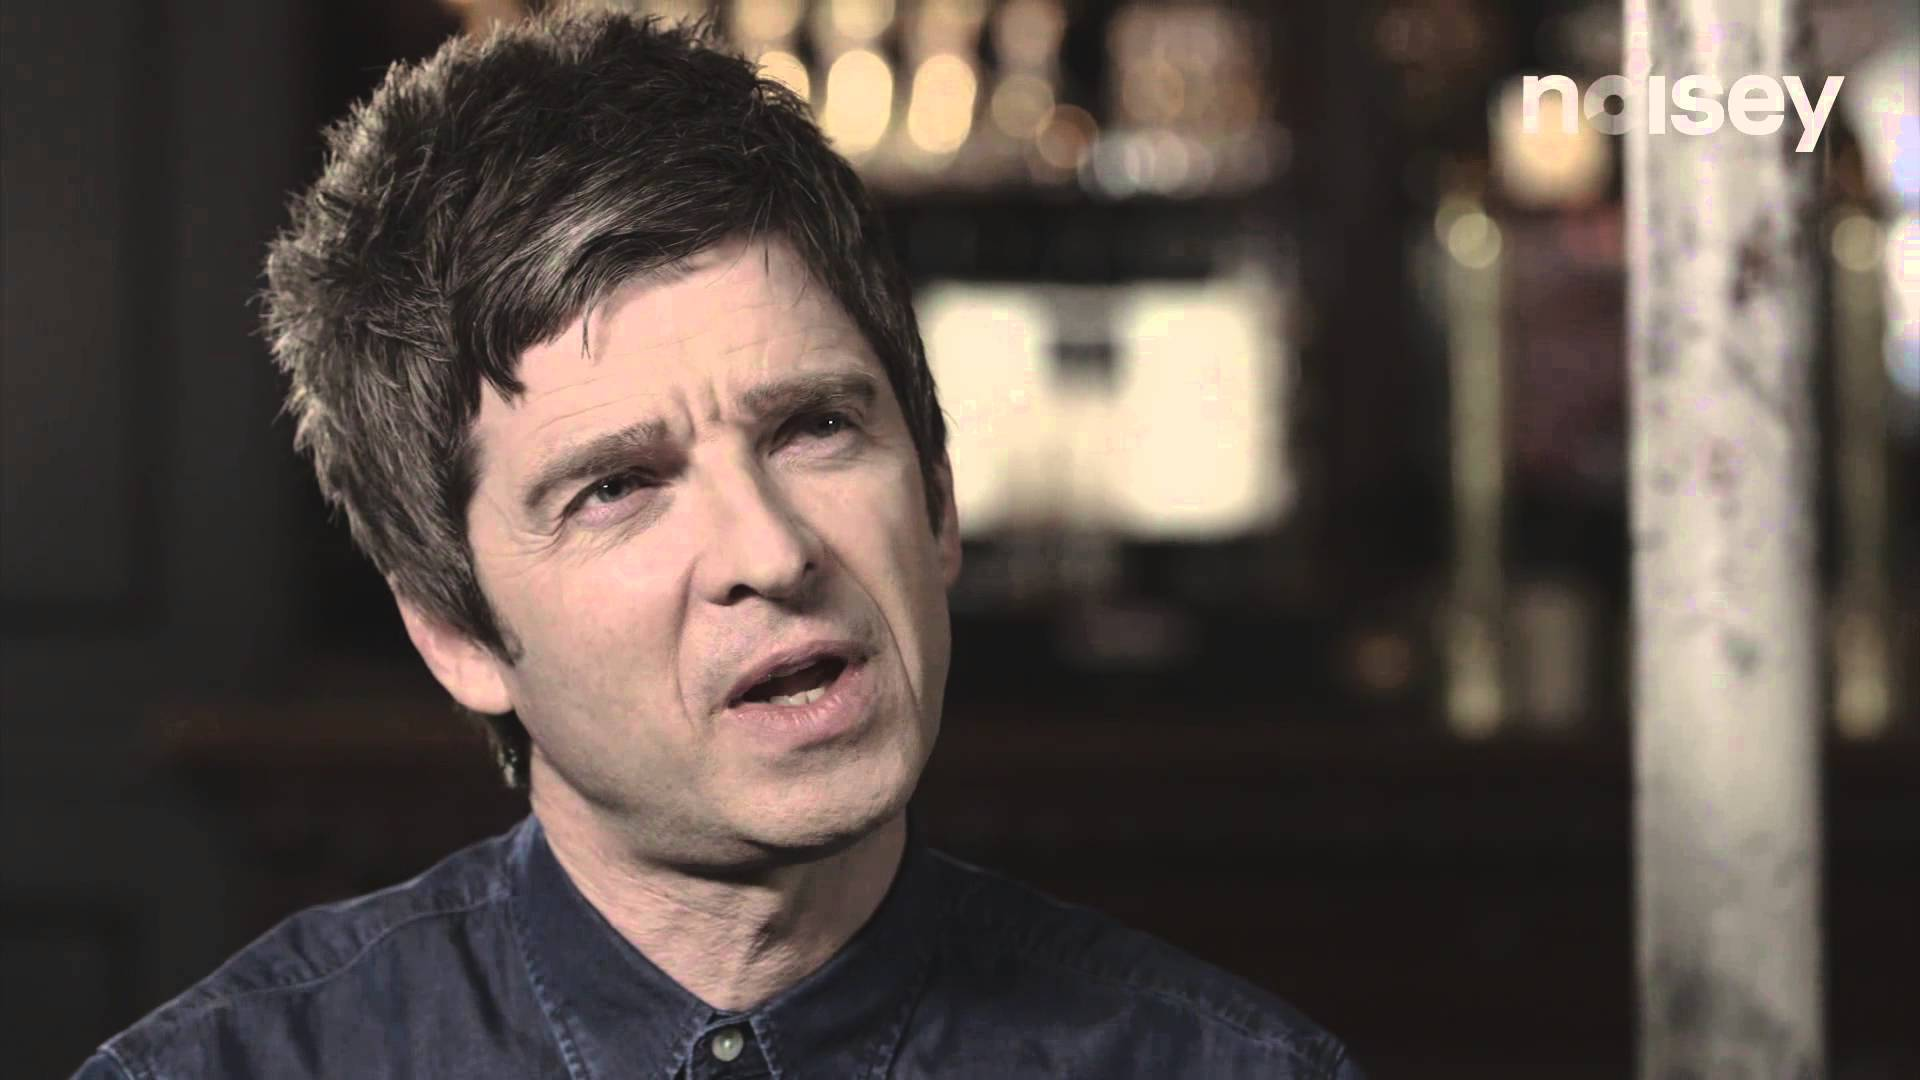 Pictures Of Noel Gallagher